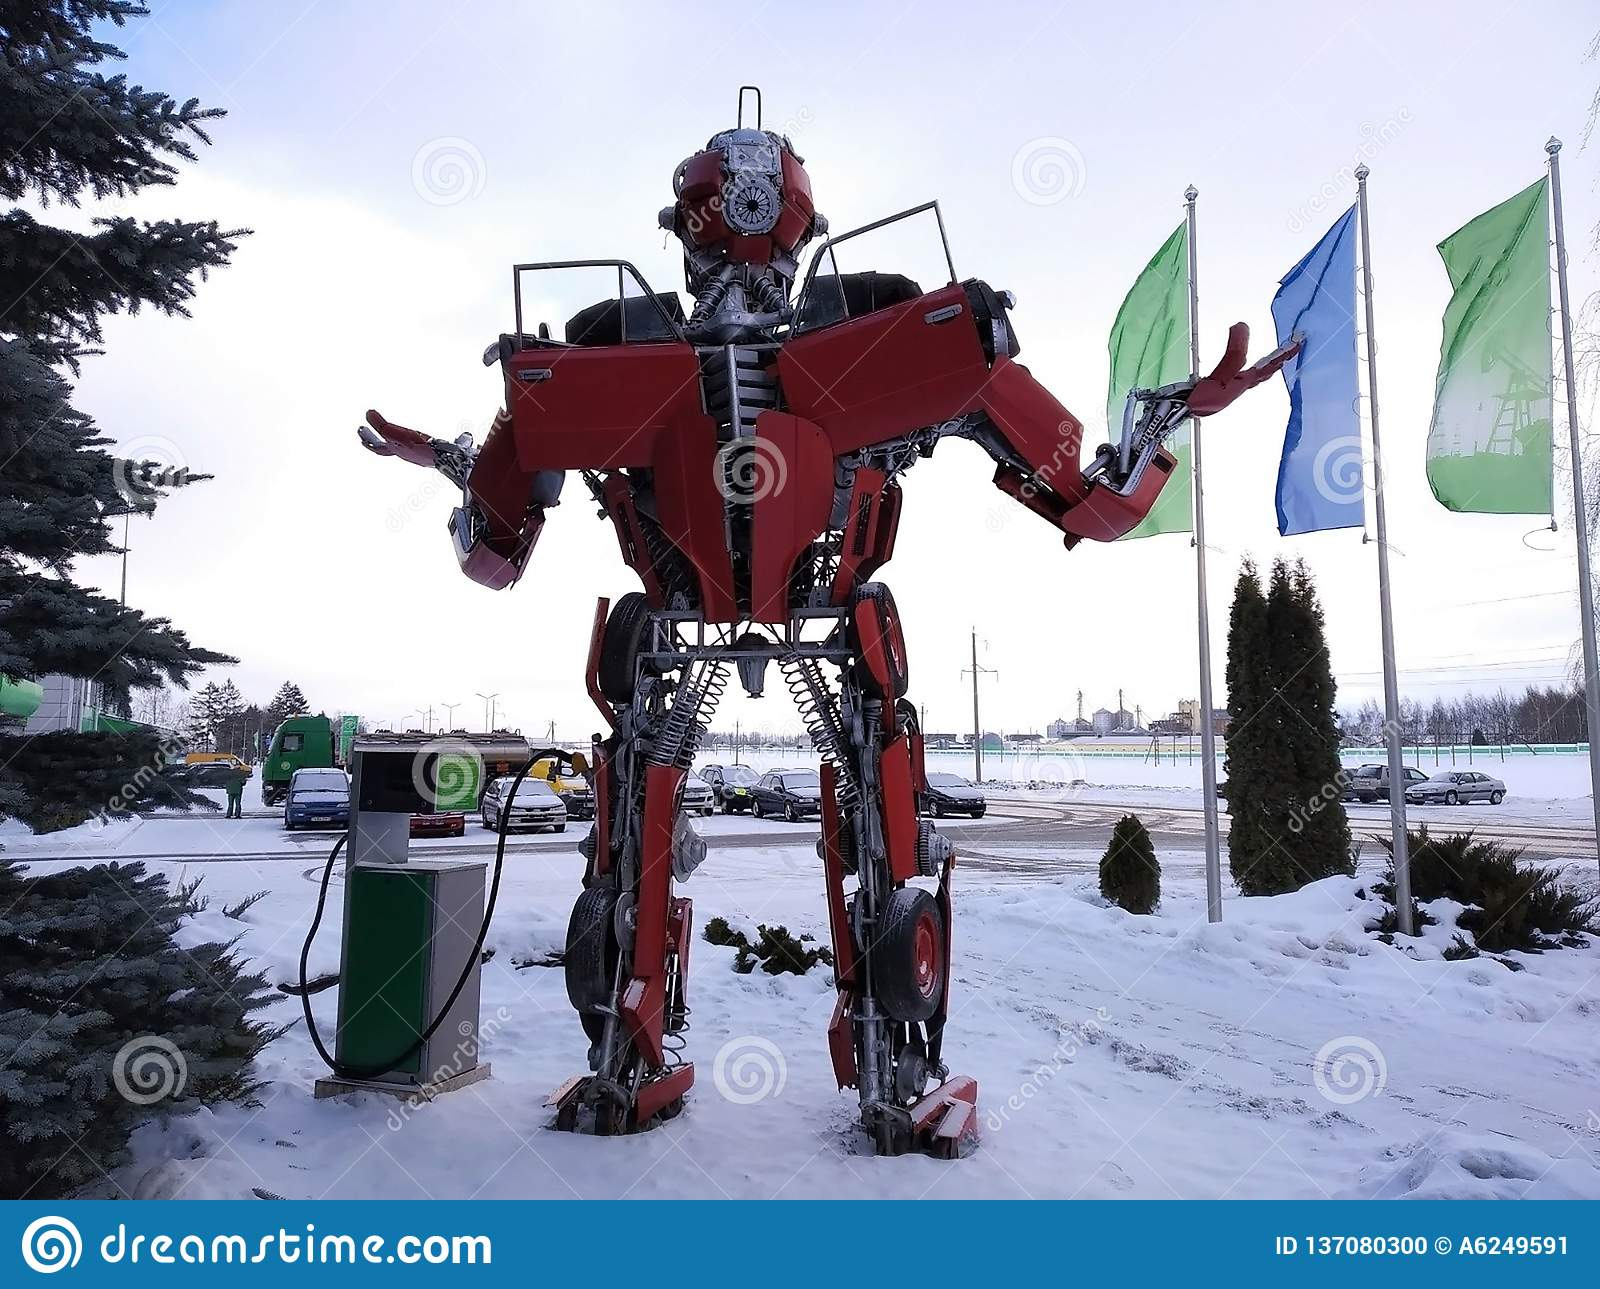 The humanoid metal funny robot the autoboat Red, is made of car spare parts, refuels gasoline, parts of body of the robot,